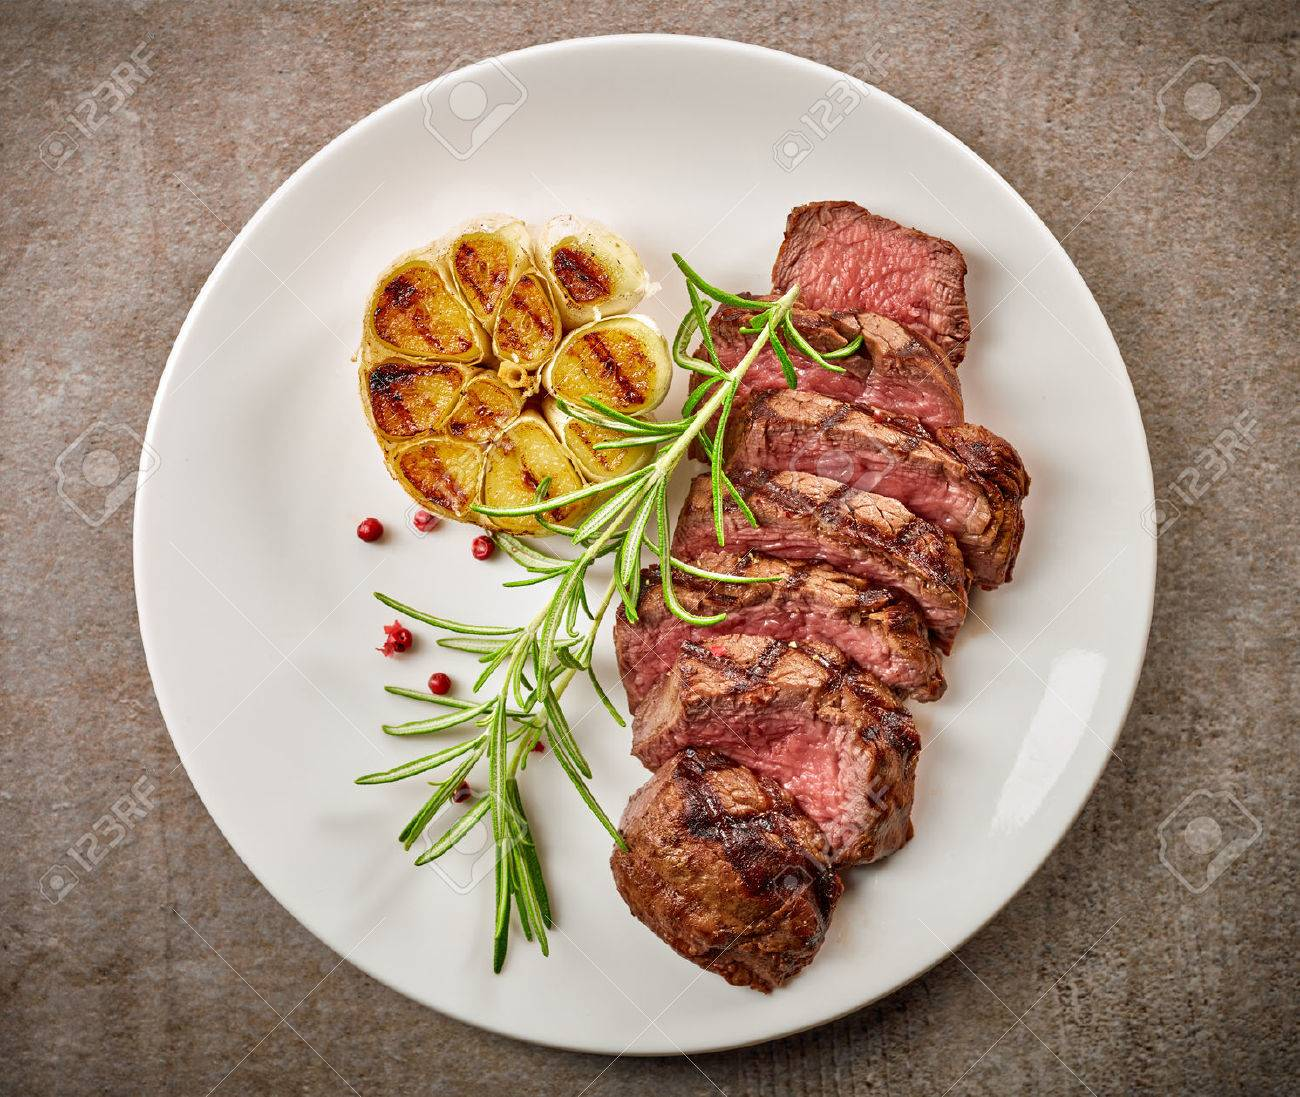 Grilled Sliced Steak And Rosemary On White Plate Top View Stock Photo Picture And Royalty Free Image Image 58394245